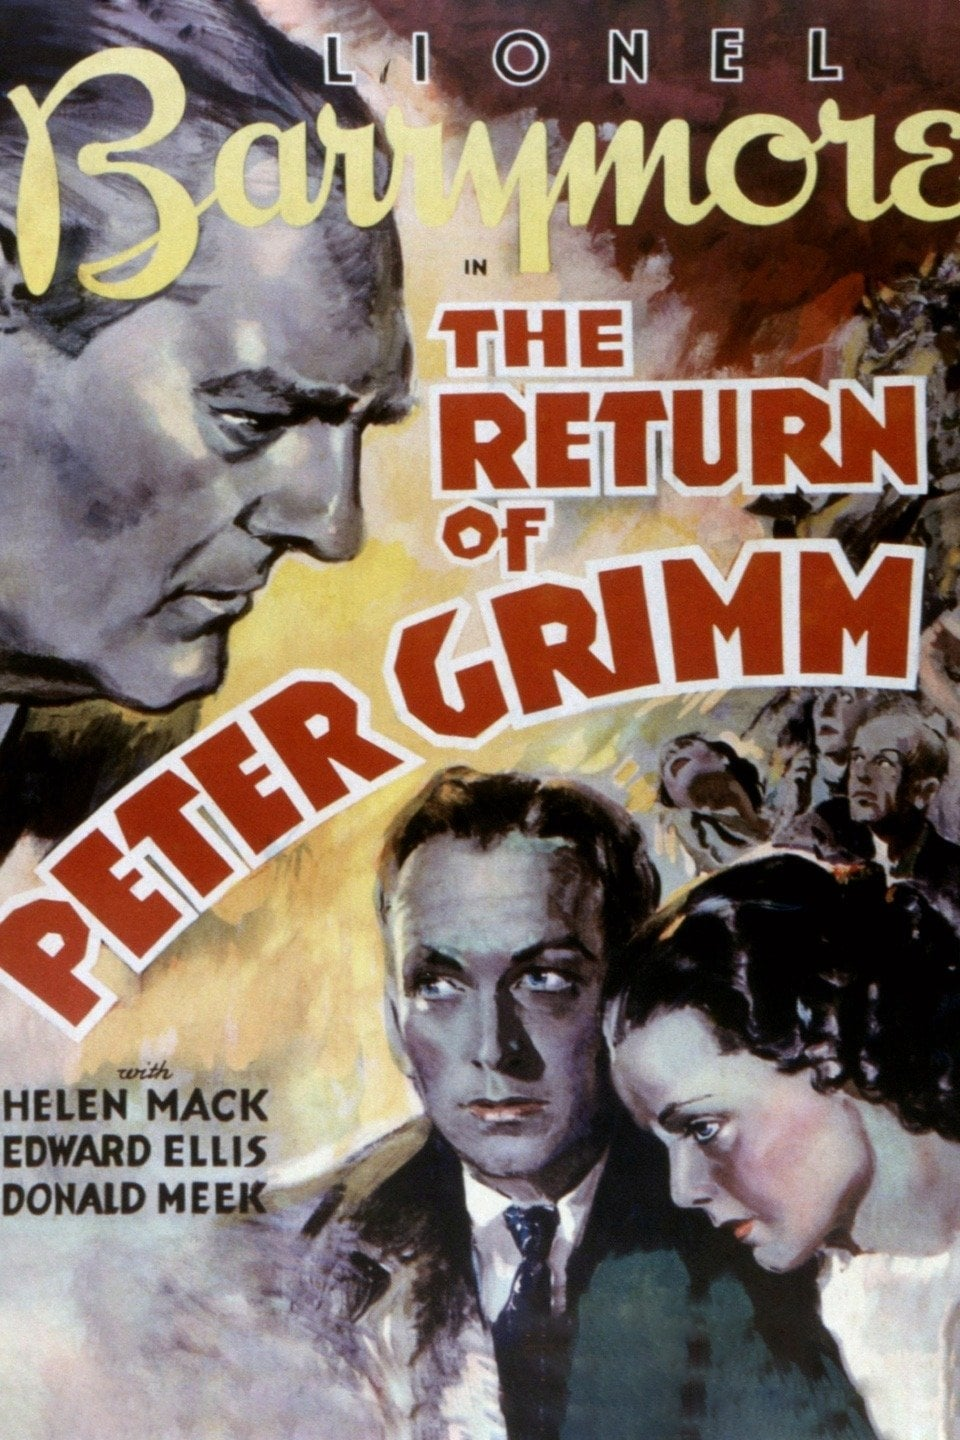 The Return Of Peter Grimm (1935)